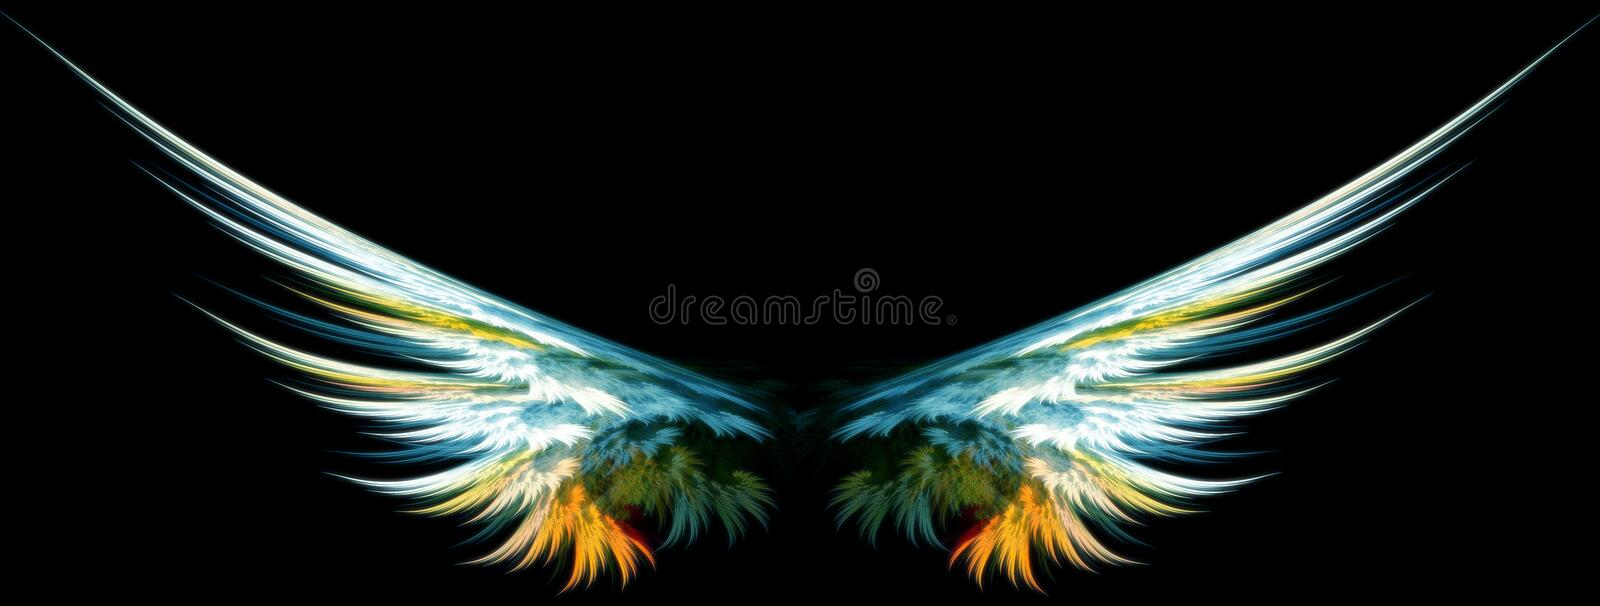 Blue angel wings vector illustration